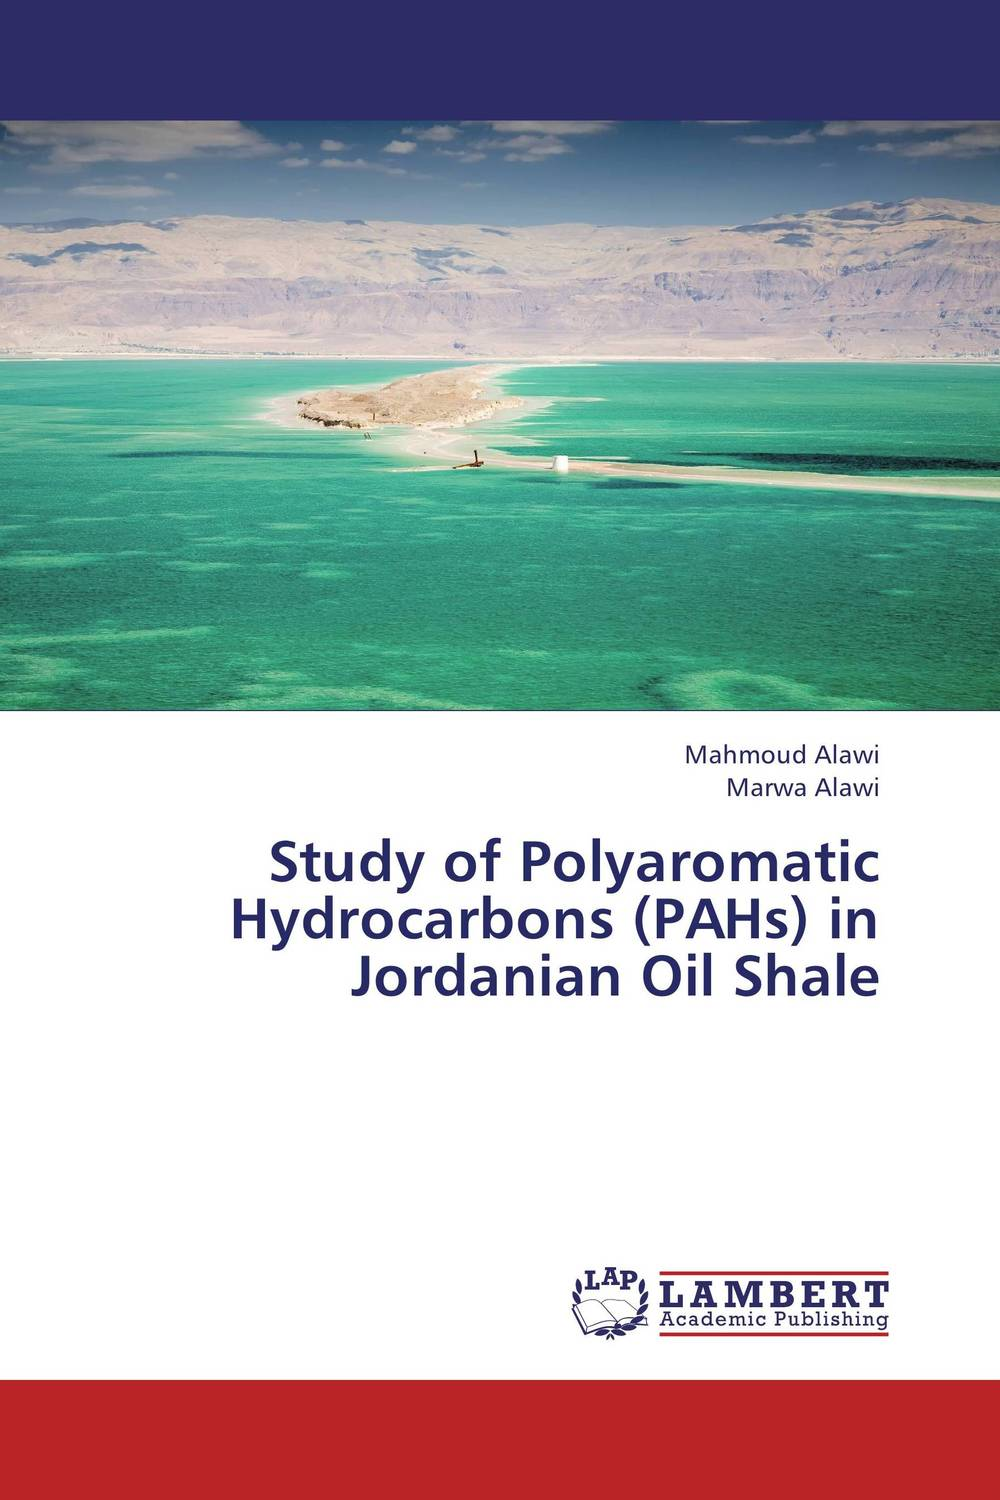 Study of Polyaromatic Hydrocarbons (PAHs) in Jordanian Oil Shale baby stroller pram bb rubber wheel inflatable tires child tricycle infant stroller baby bike 1 6 years old bicycle baby car